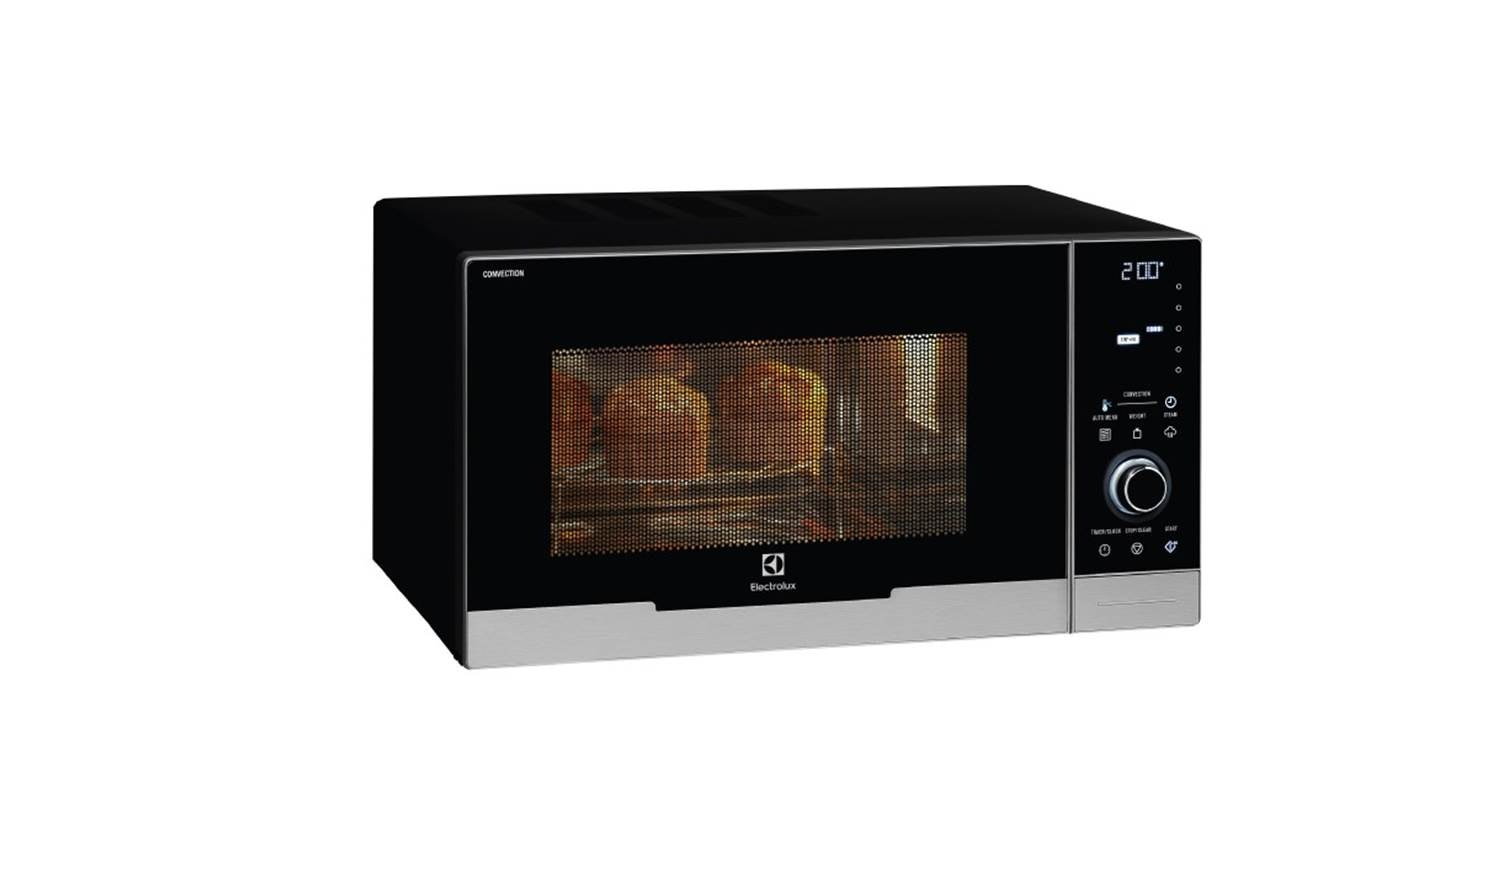 Electrolux Ems 3087x Microwave Oven Harvey Norman Singapore